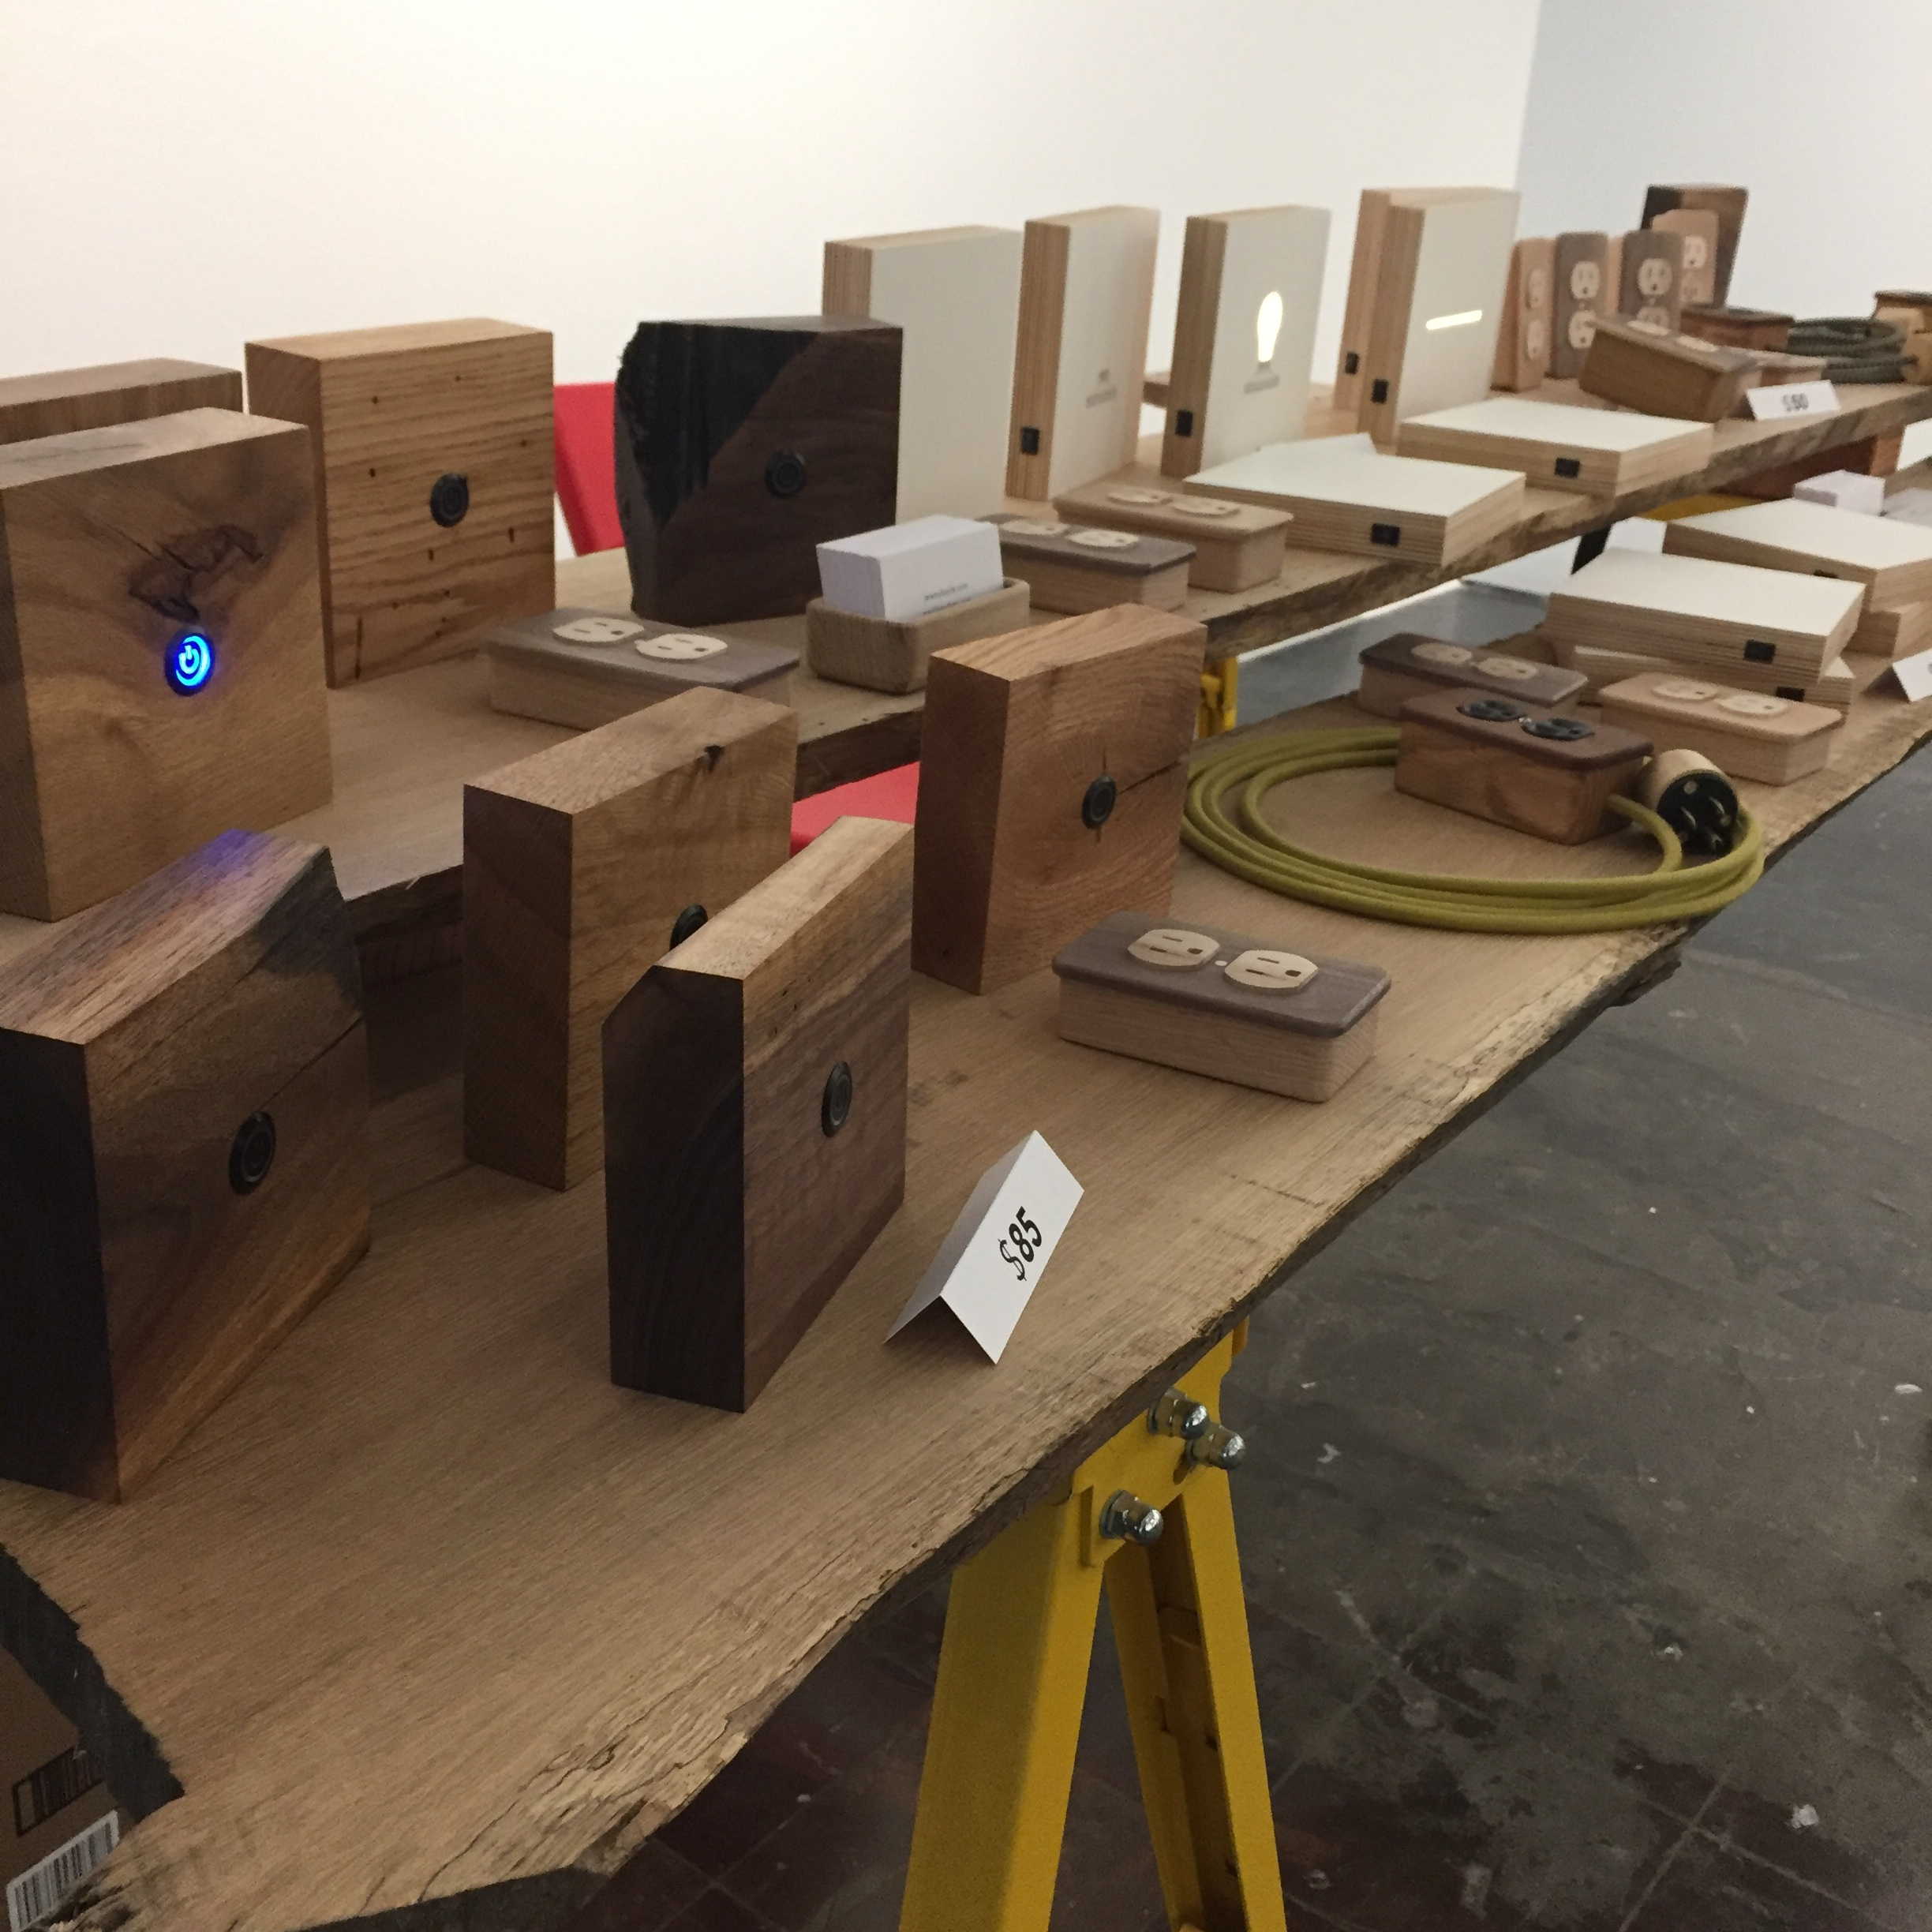 Objects/Multiples - Designs by Jeremy Boyle and Mark Franchino